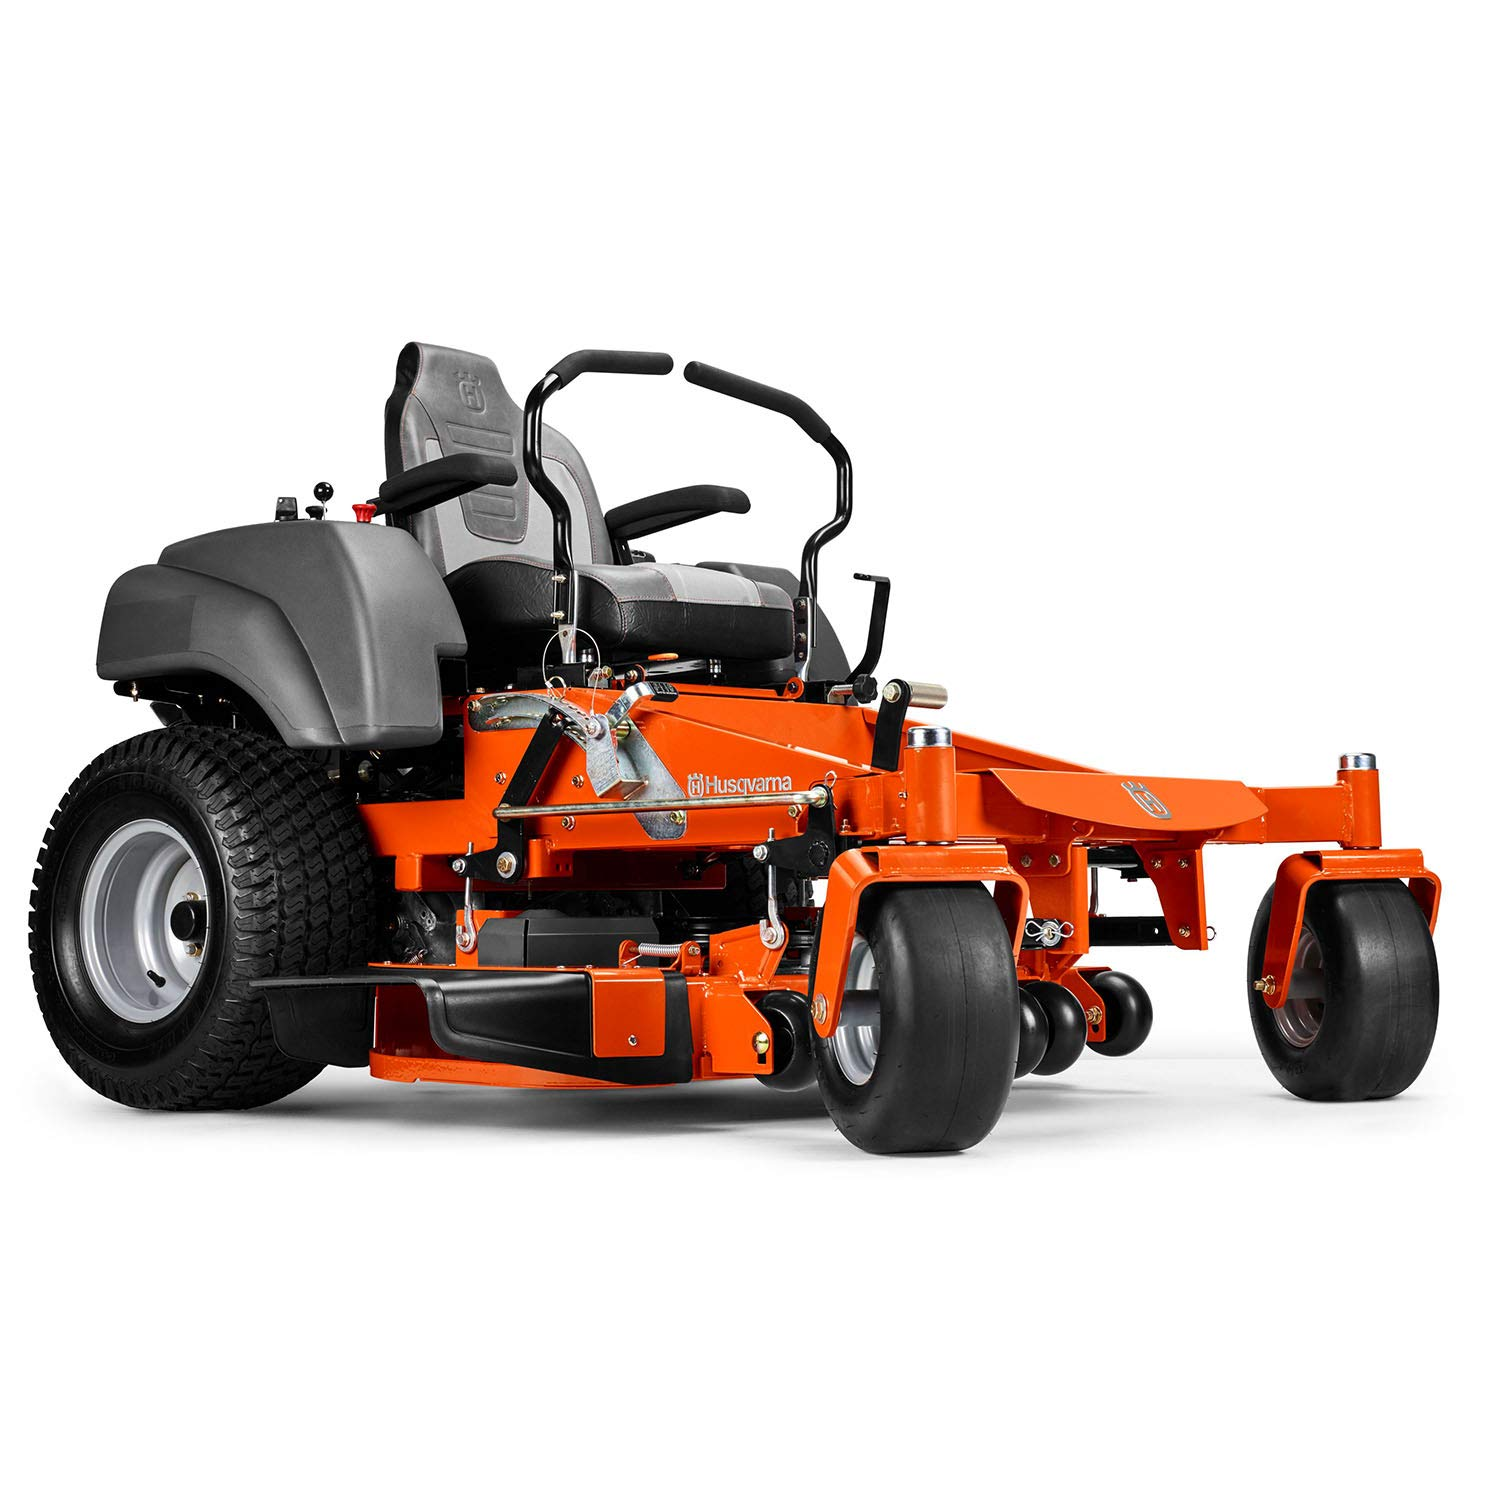 2. Husqvarna MZ61 Briggs & Stratton Zero Turn Riding Mower - Best Zero Turn Mower for Large Lawns